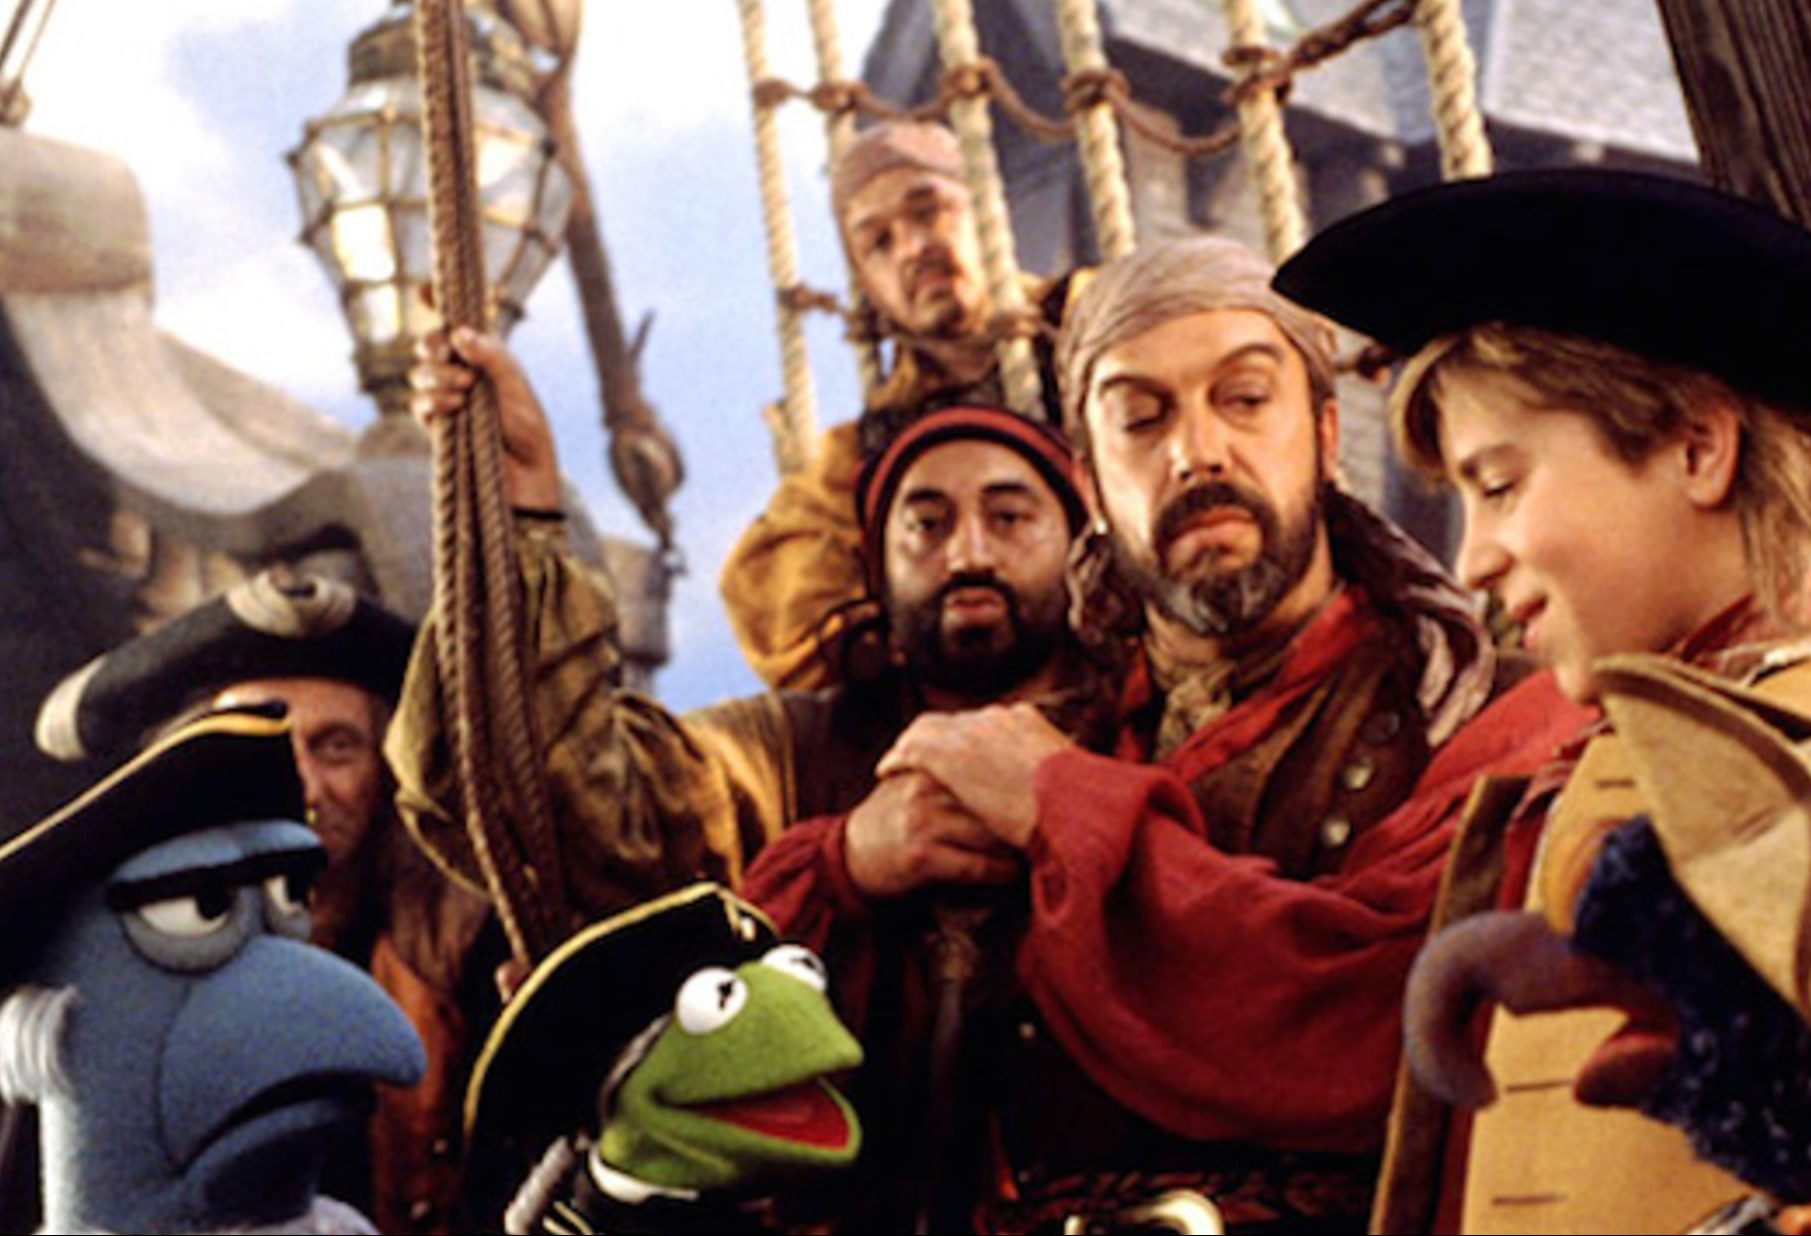 muppet treasure island e1622212268525 The Muppets: All The Movies, Ranked!